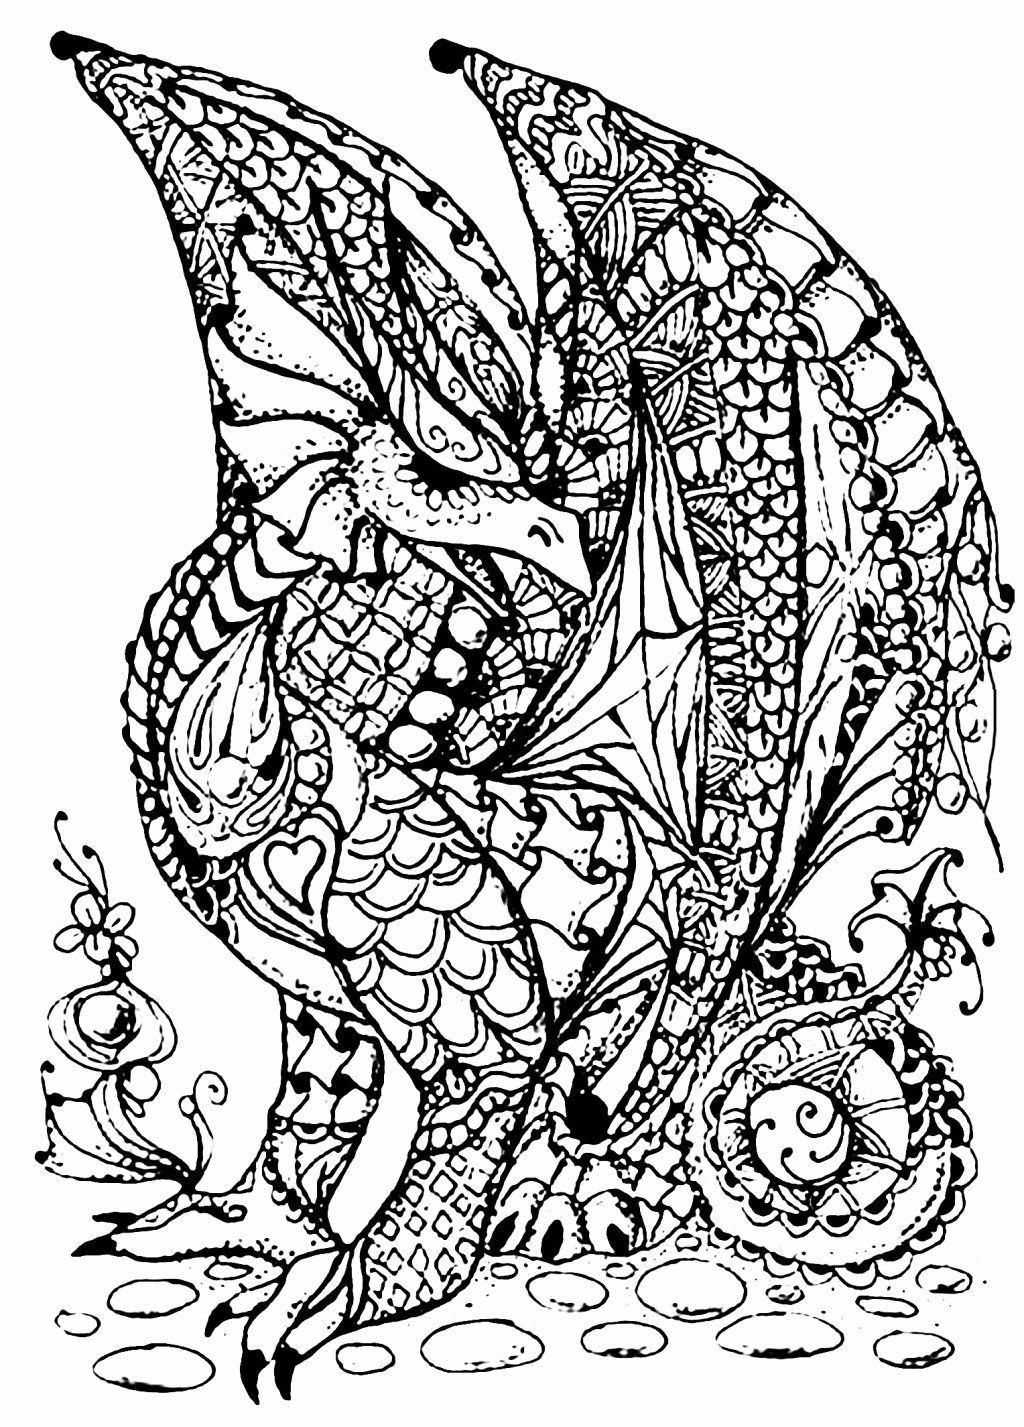 Dragon Coloring Pages From Mason Jpg 700 789 Dragon Coloring Page Realistic Dragon Coloring Pages